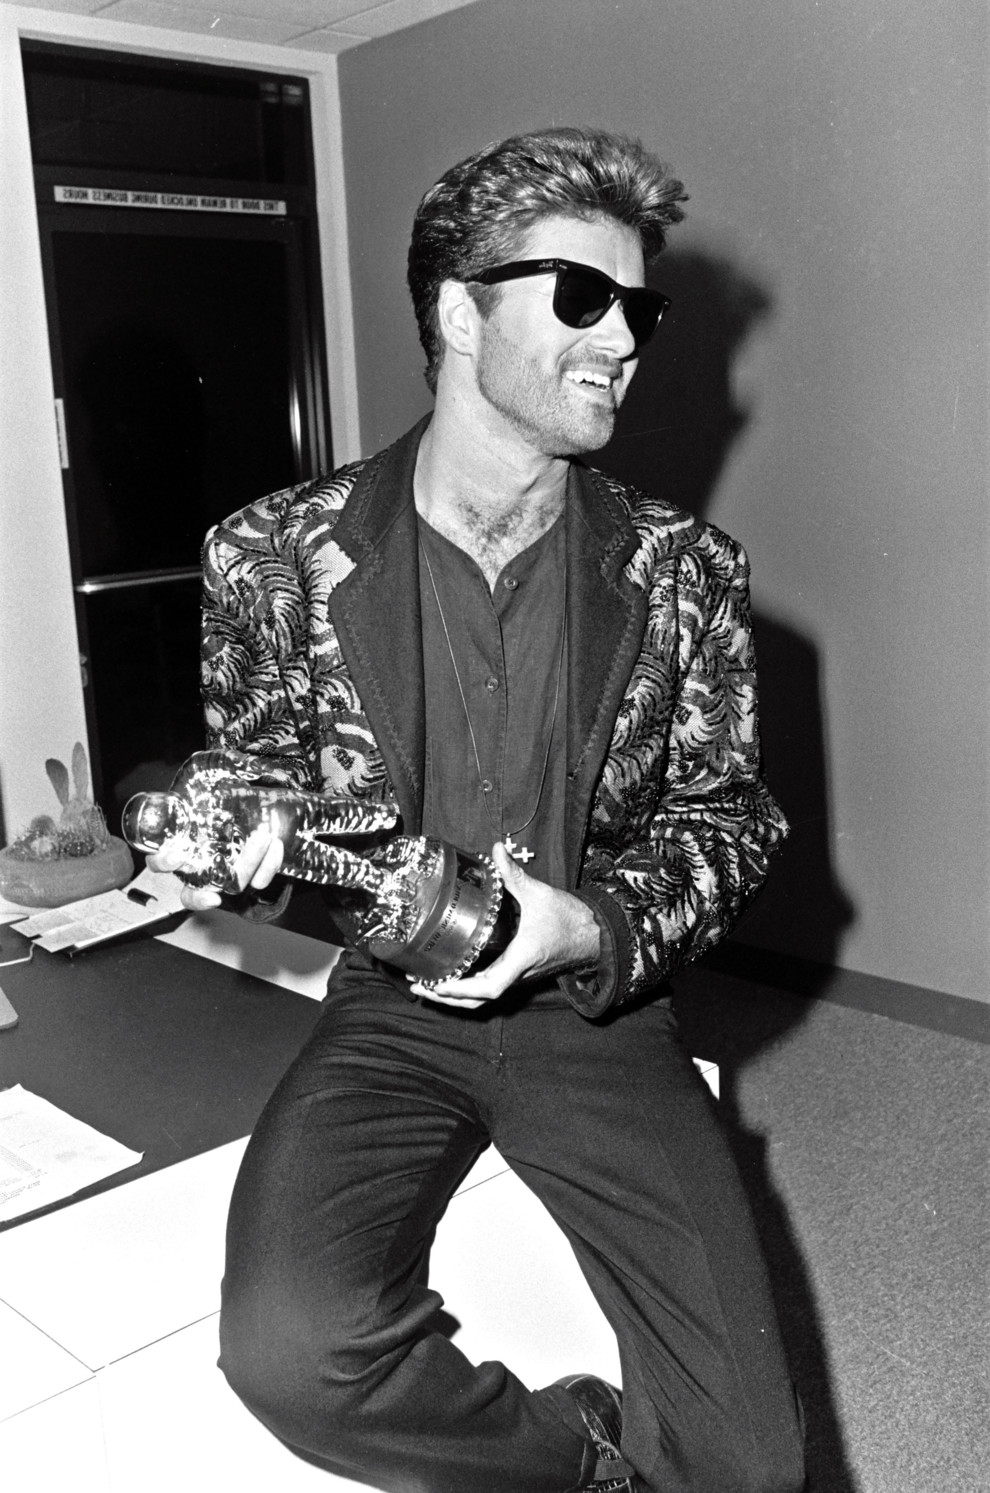 George Michael MTV Music Awards 1989